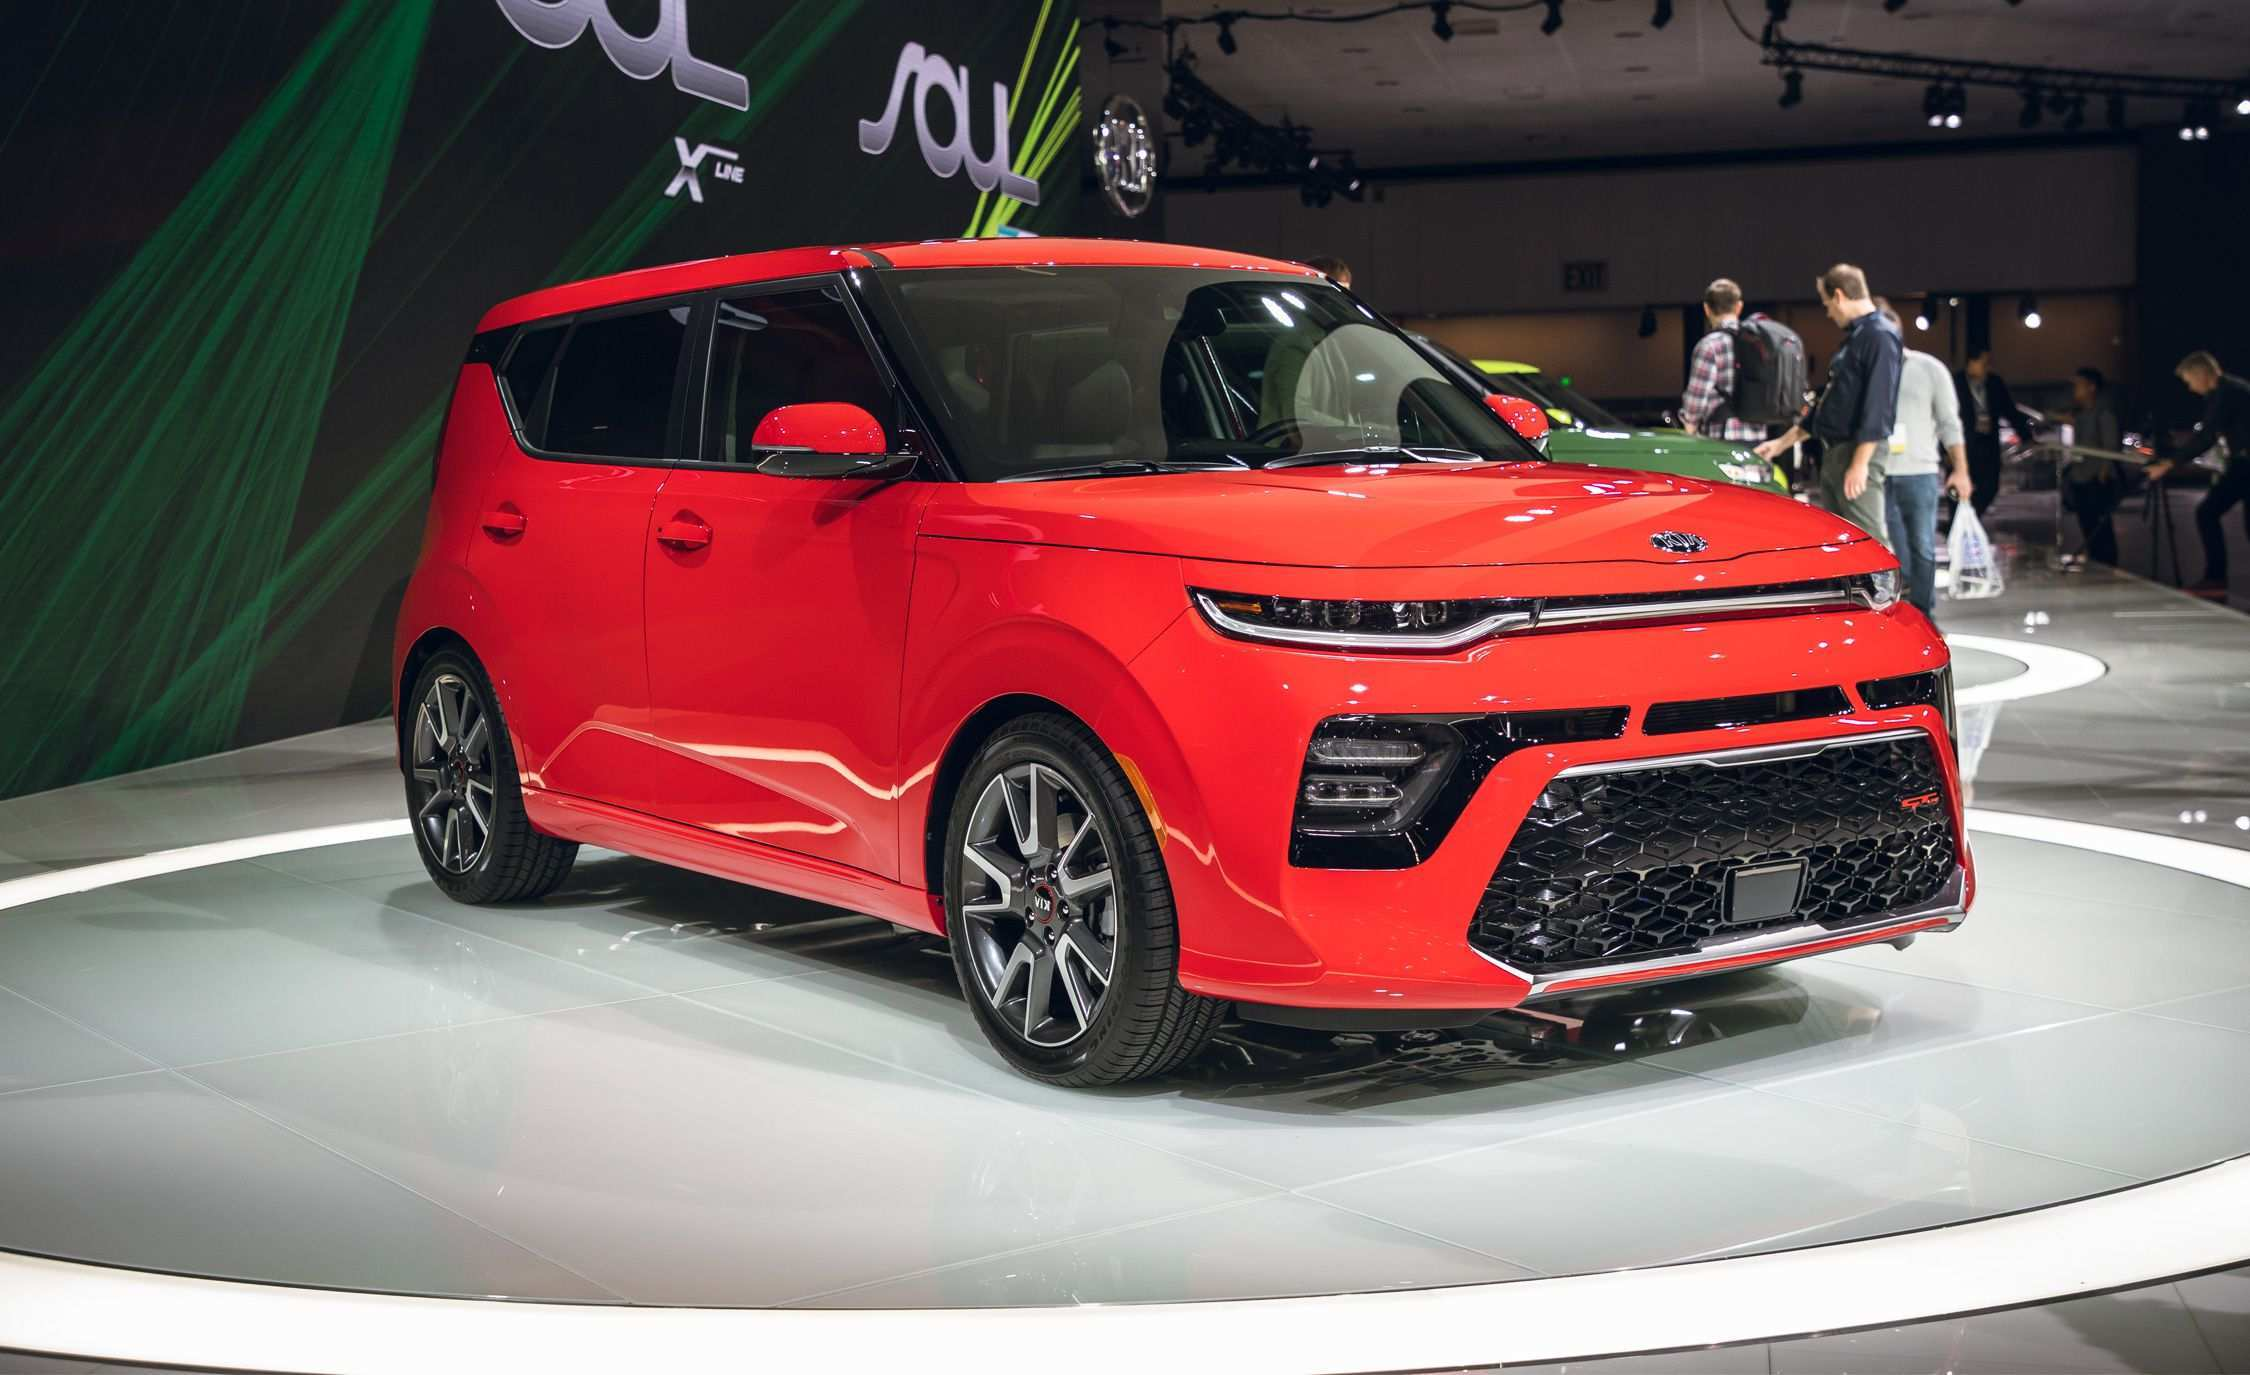 91 The Best 2020 Kia Soul Gt Review And Release Date